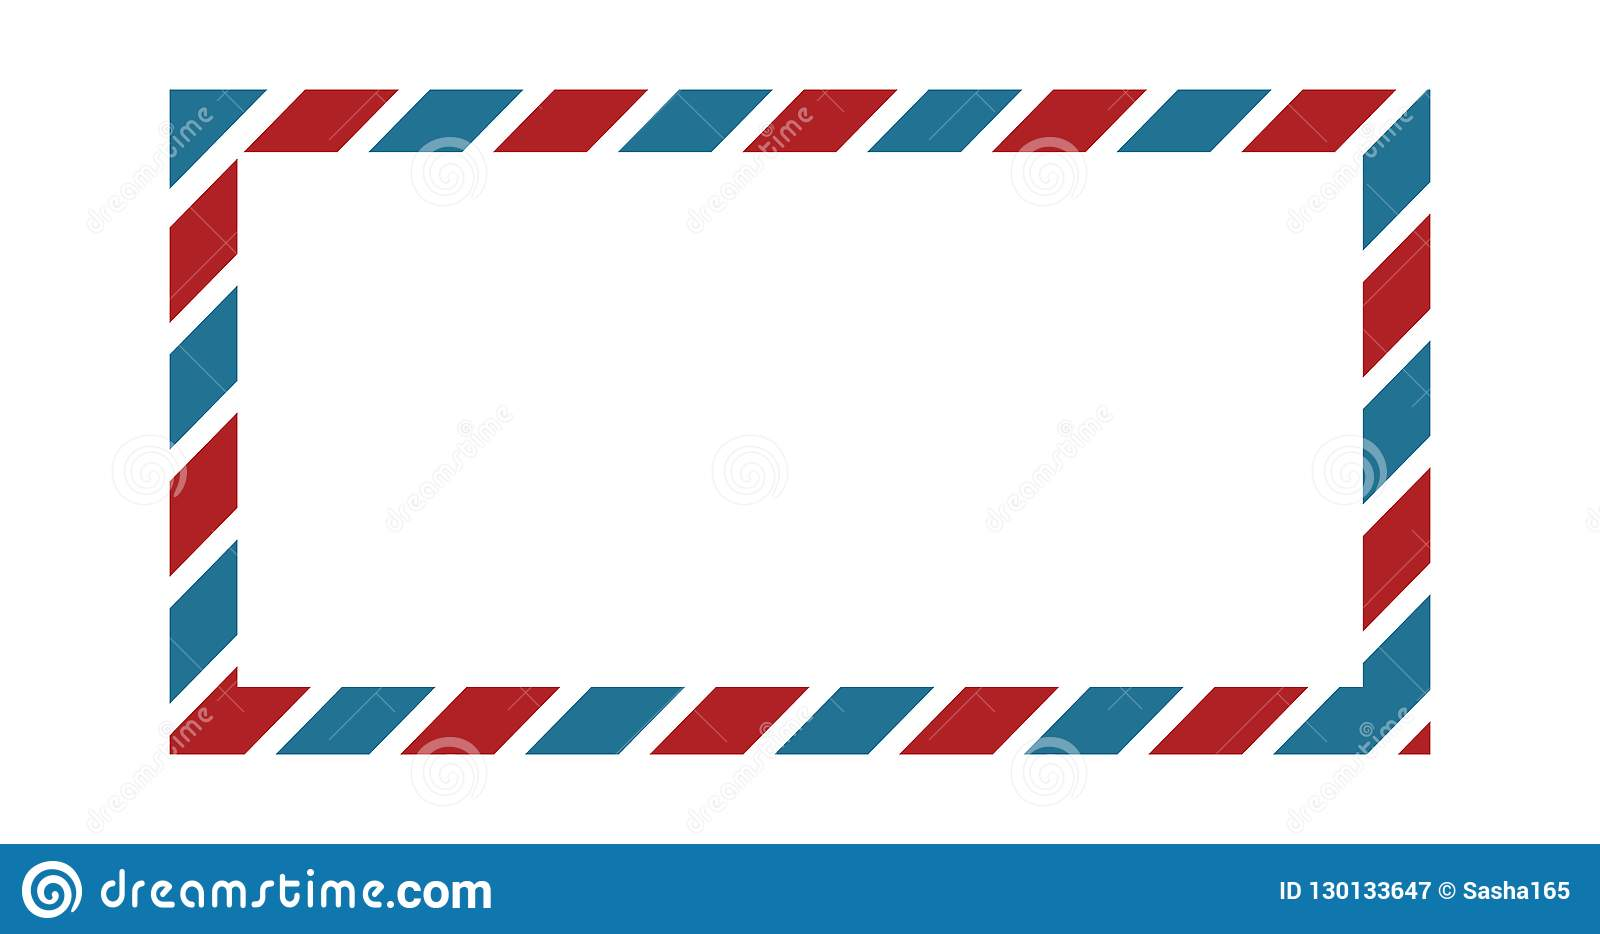 classic envelope border with red and blue colors for greeting cardclassic envelope border with red and blue colors for greeting card design, wallpaper border,